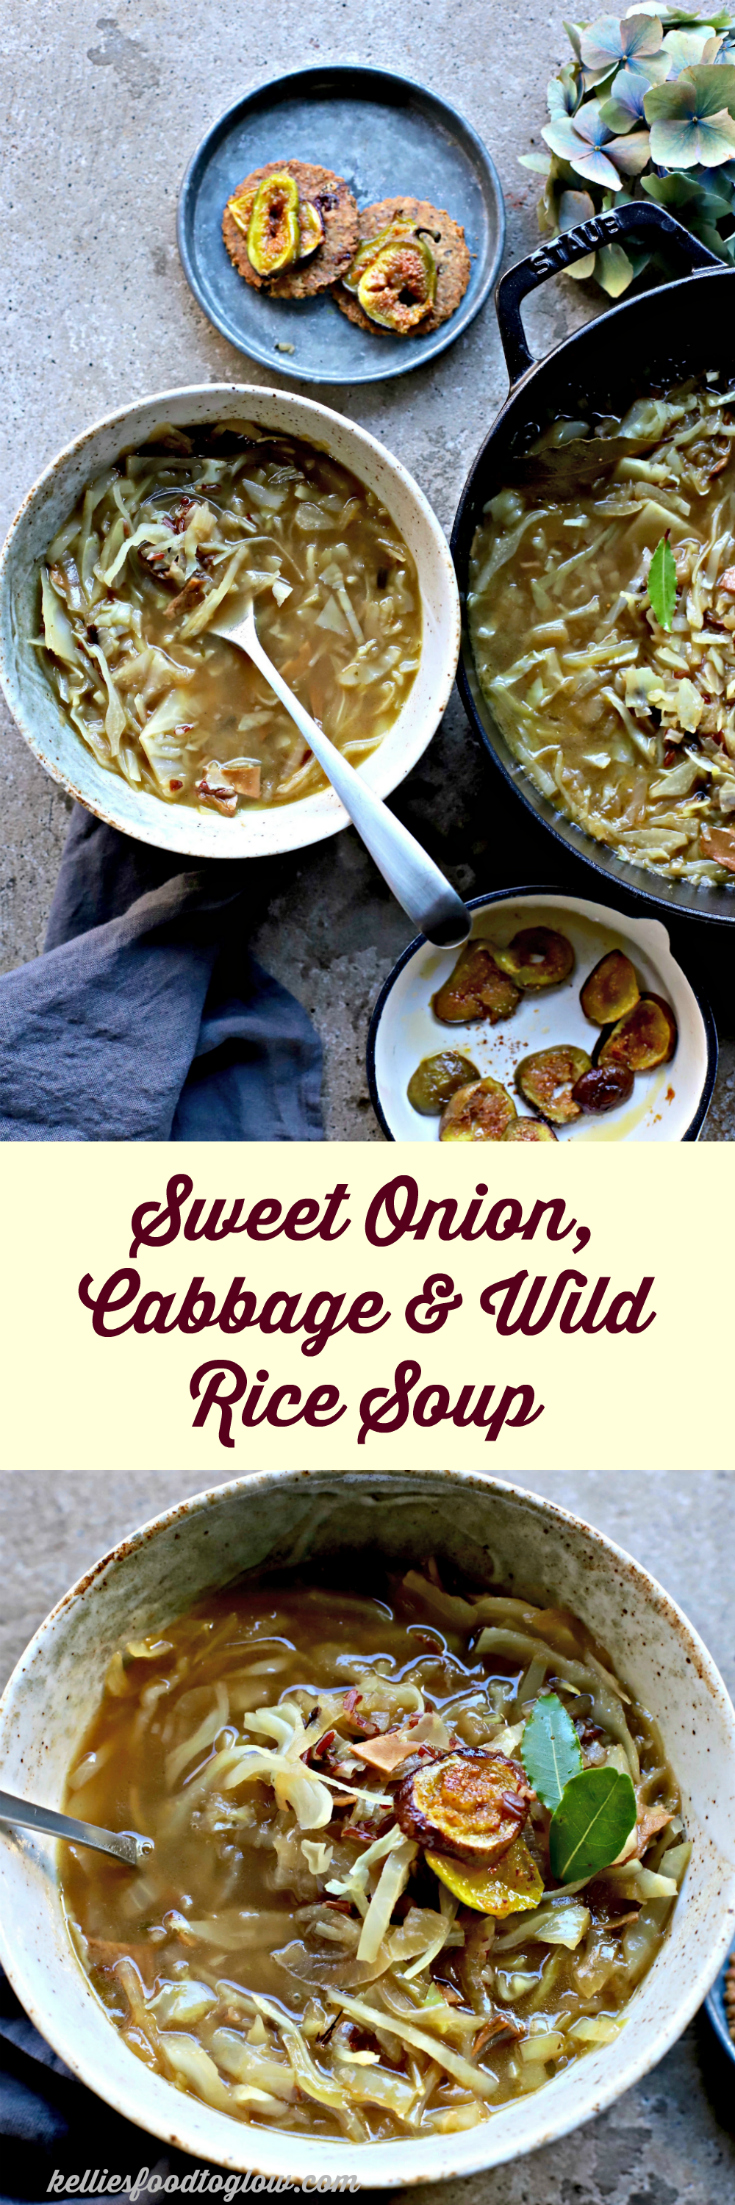 Sweet Onion, Cabbage and Wild Rice Soup | food to glow